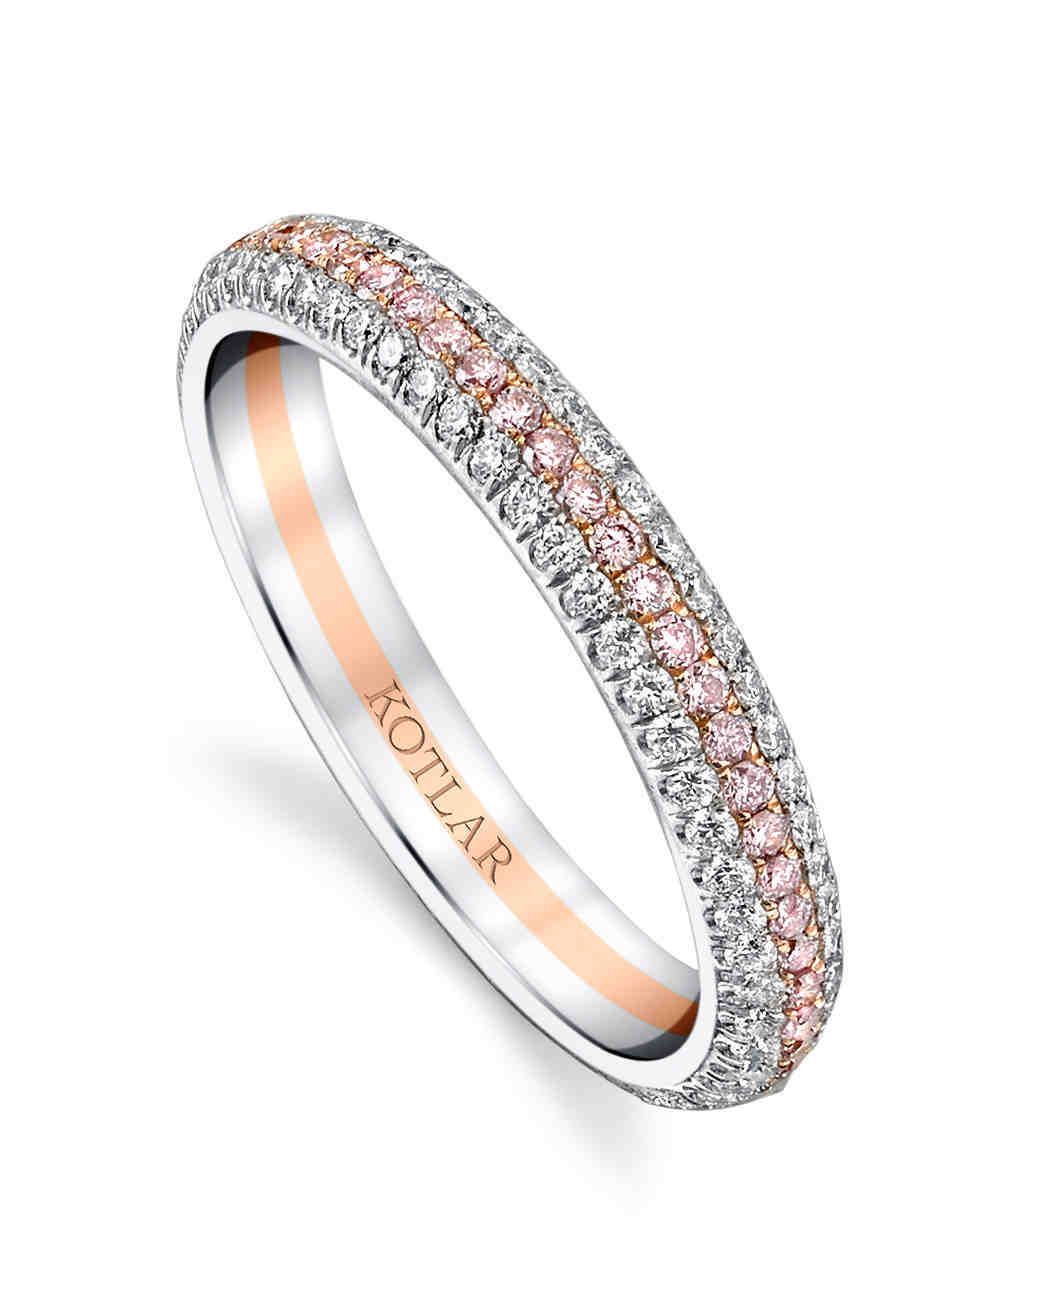 samuel s h men wedding diamond d engagement product titanium rings ring and webstore jewellery number